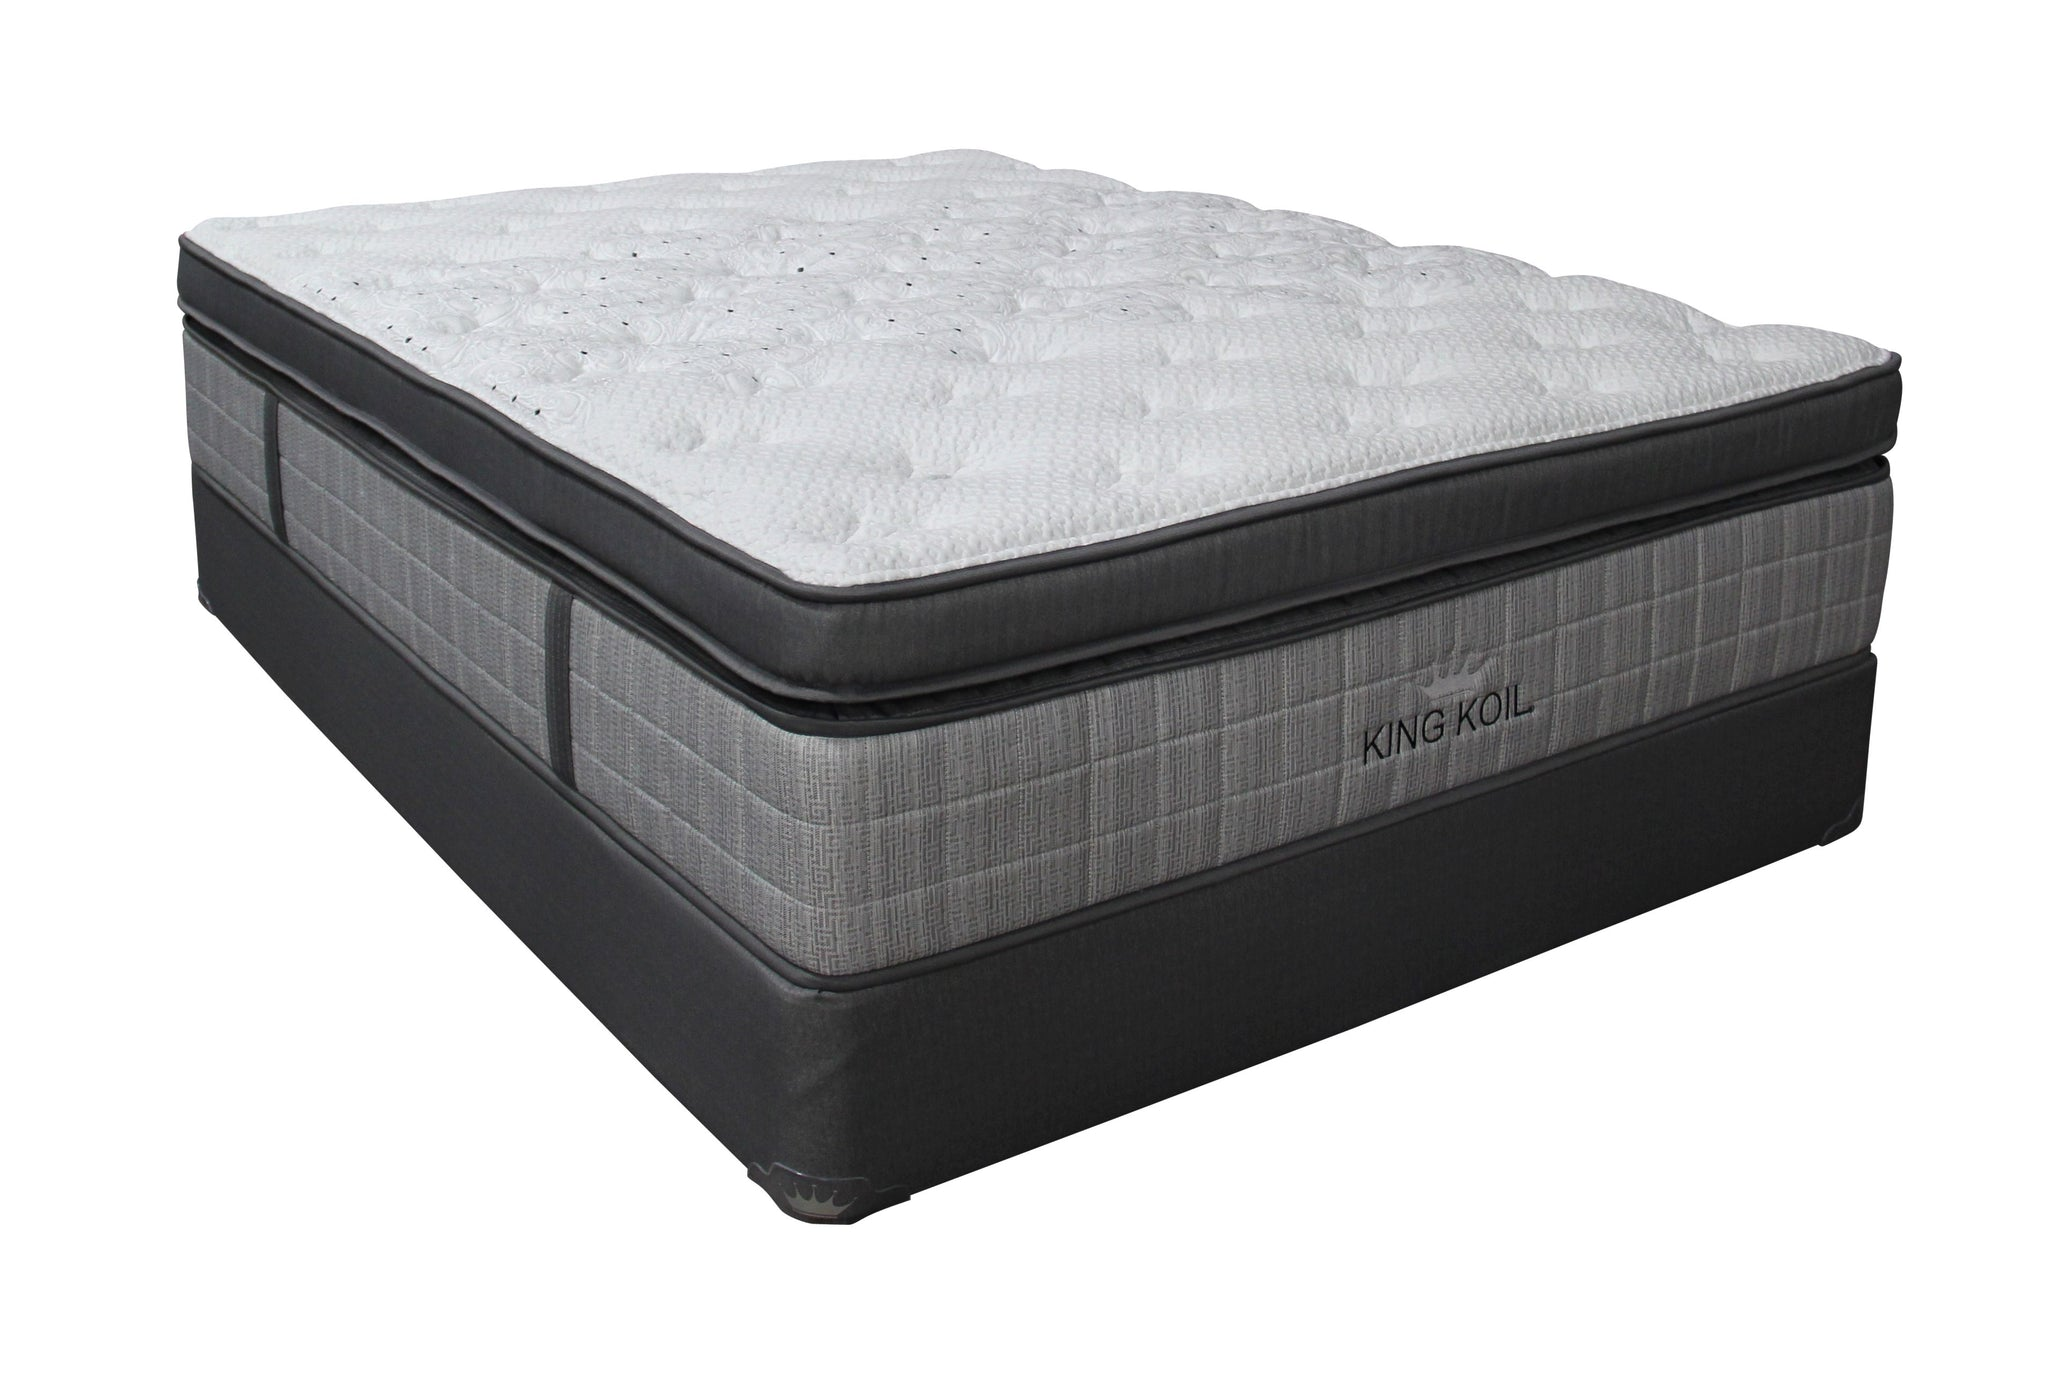 bonnel top pillow topper spring mattress extra